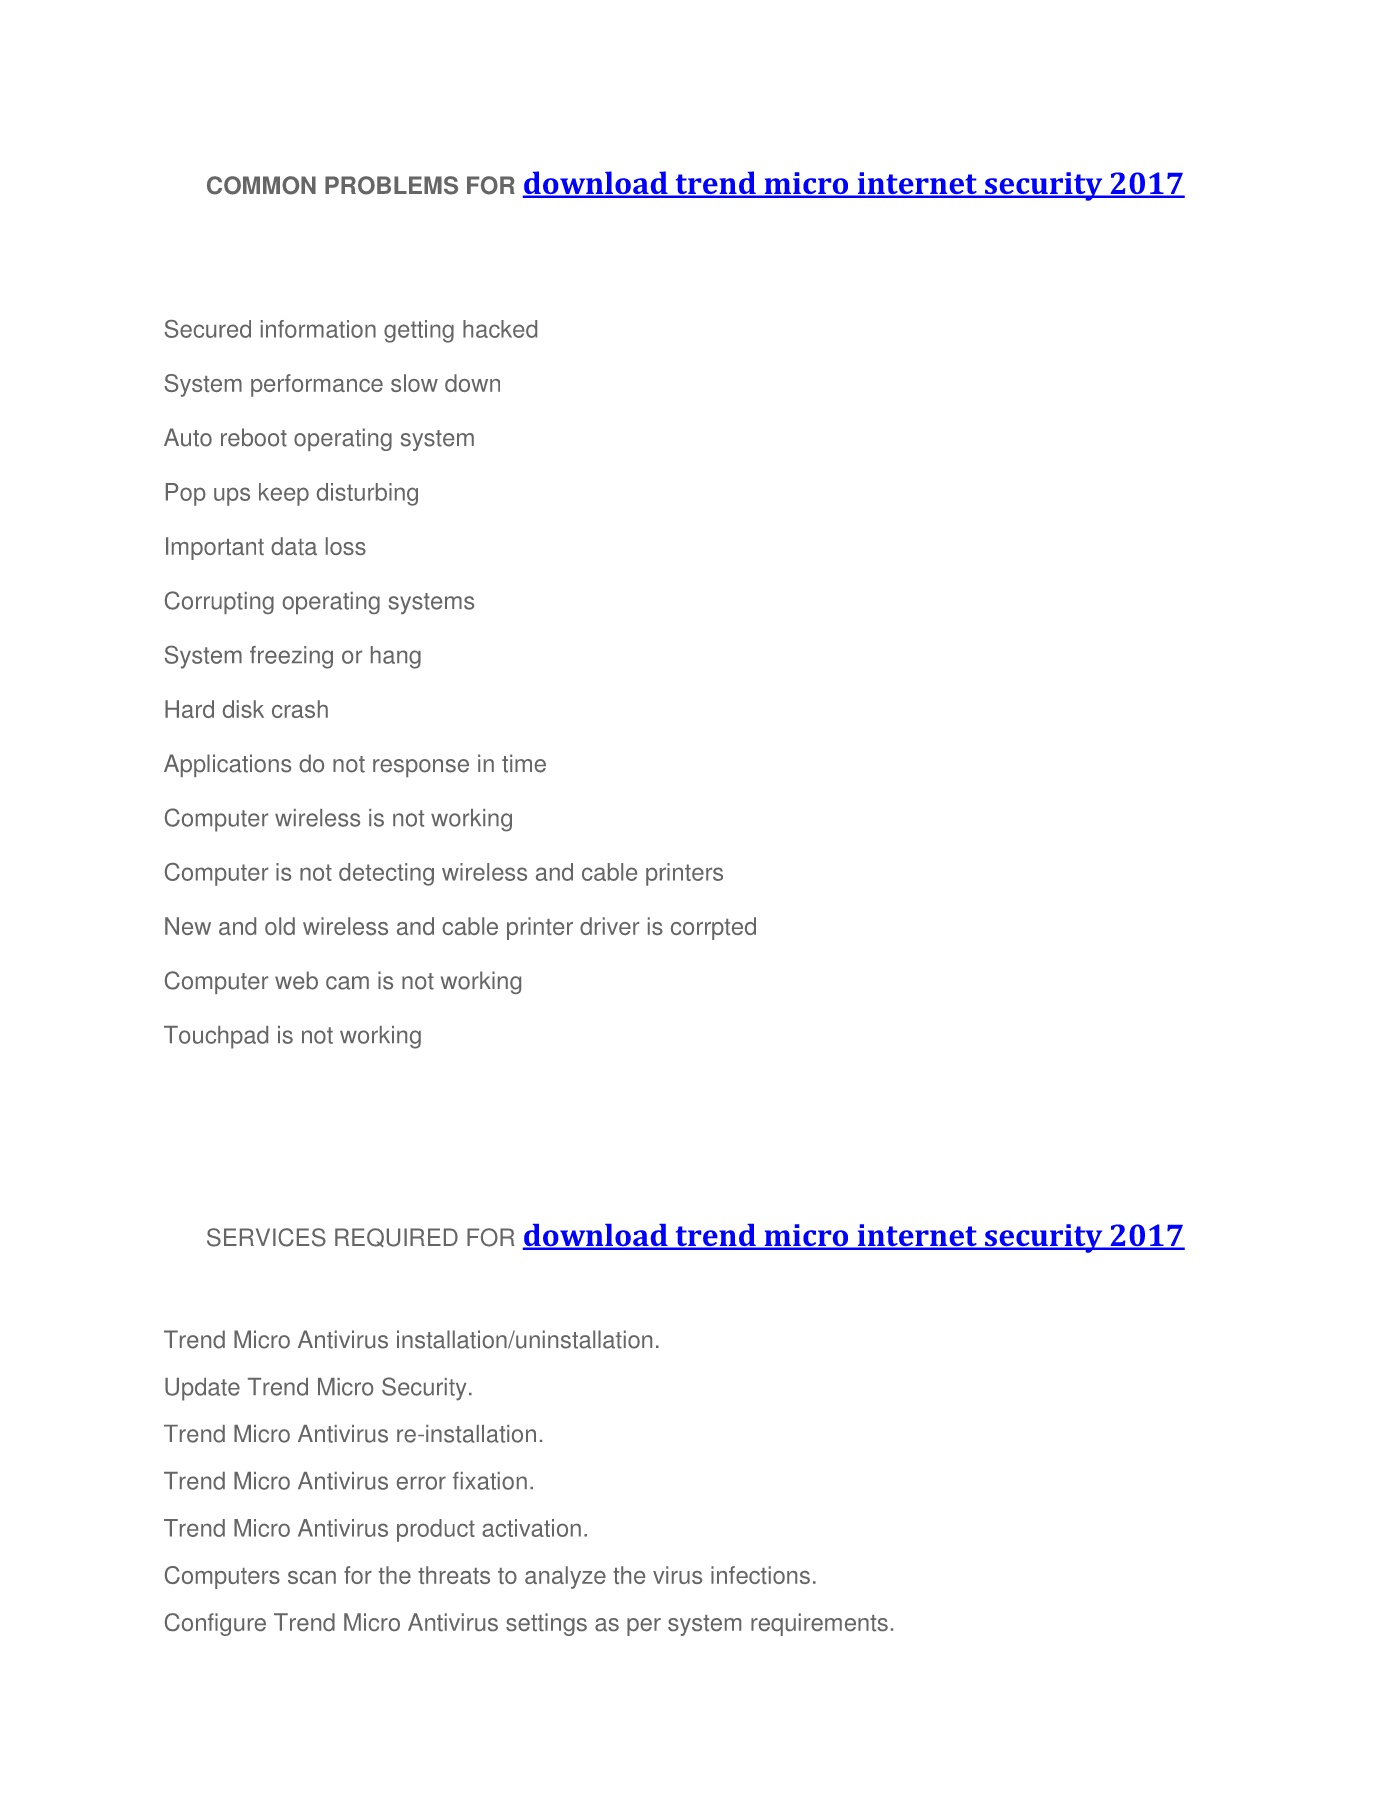 download trend micro internet security 2017 Pages 1 - 4